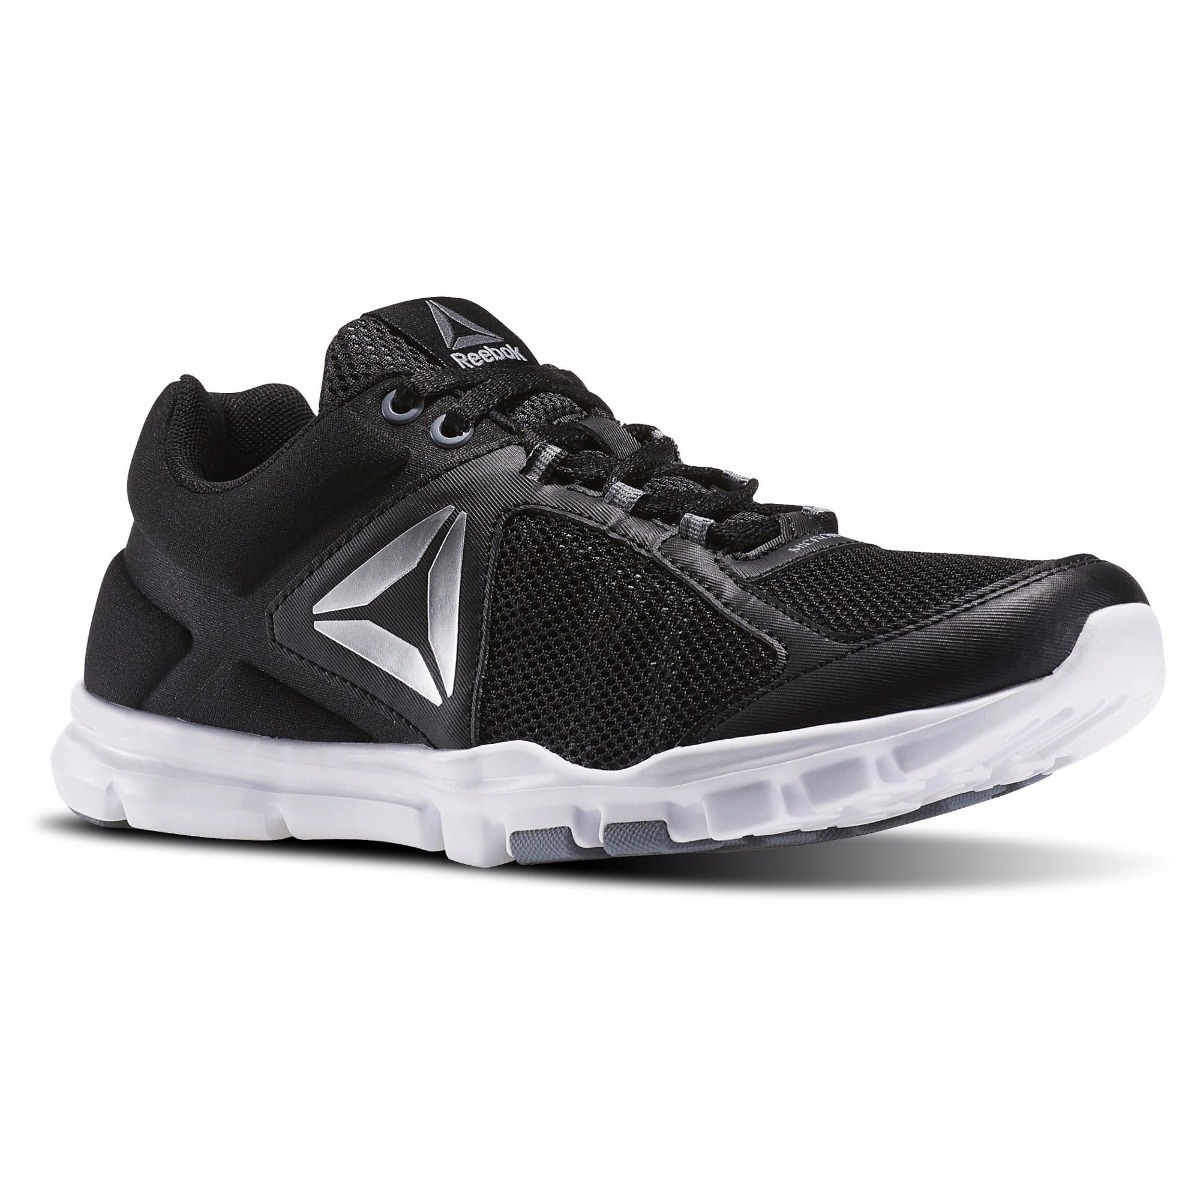 acea49e8626 zapatillas reebok modelo yourflex train 9.0 mt - (4834). Cargando zoom.